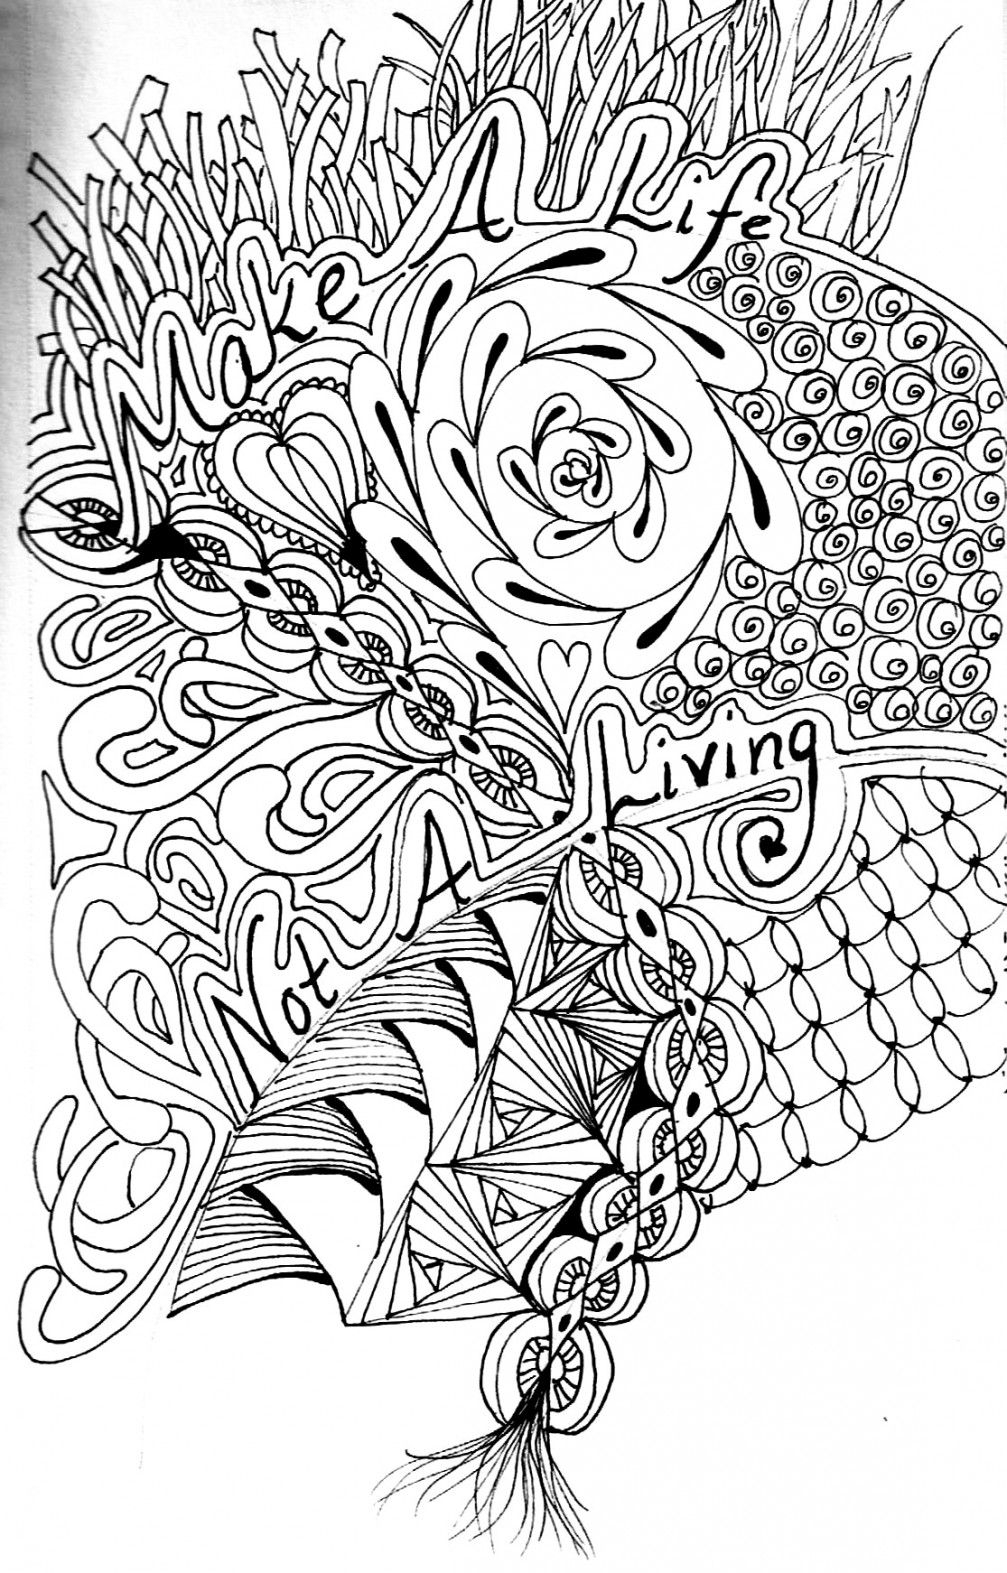 forgiveness coloring pages - advanced coloring pages for adults